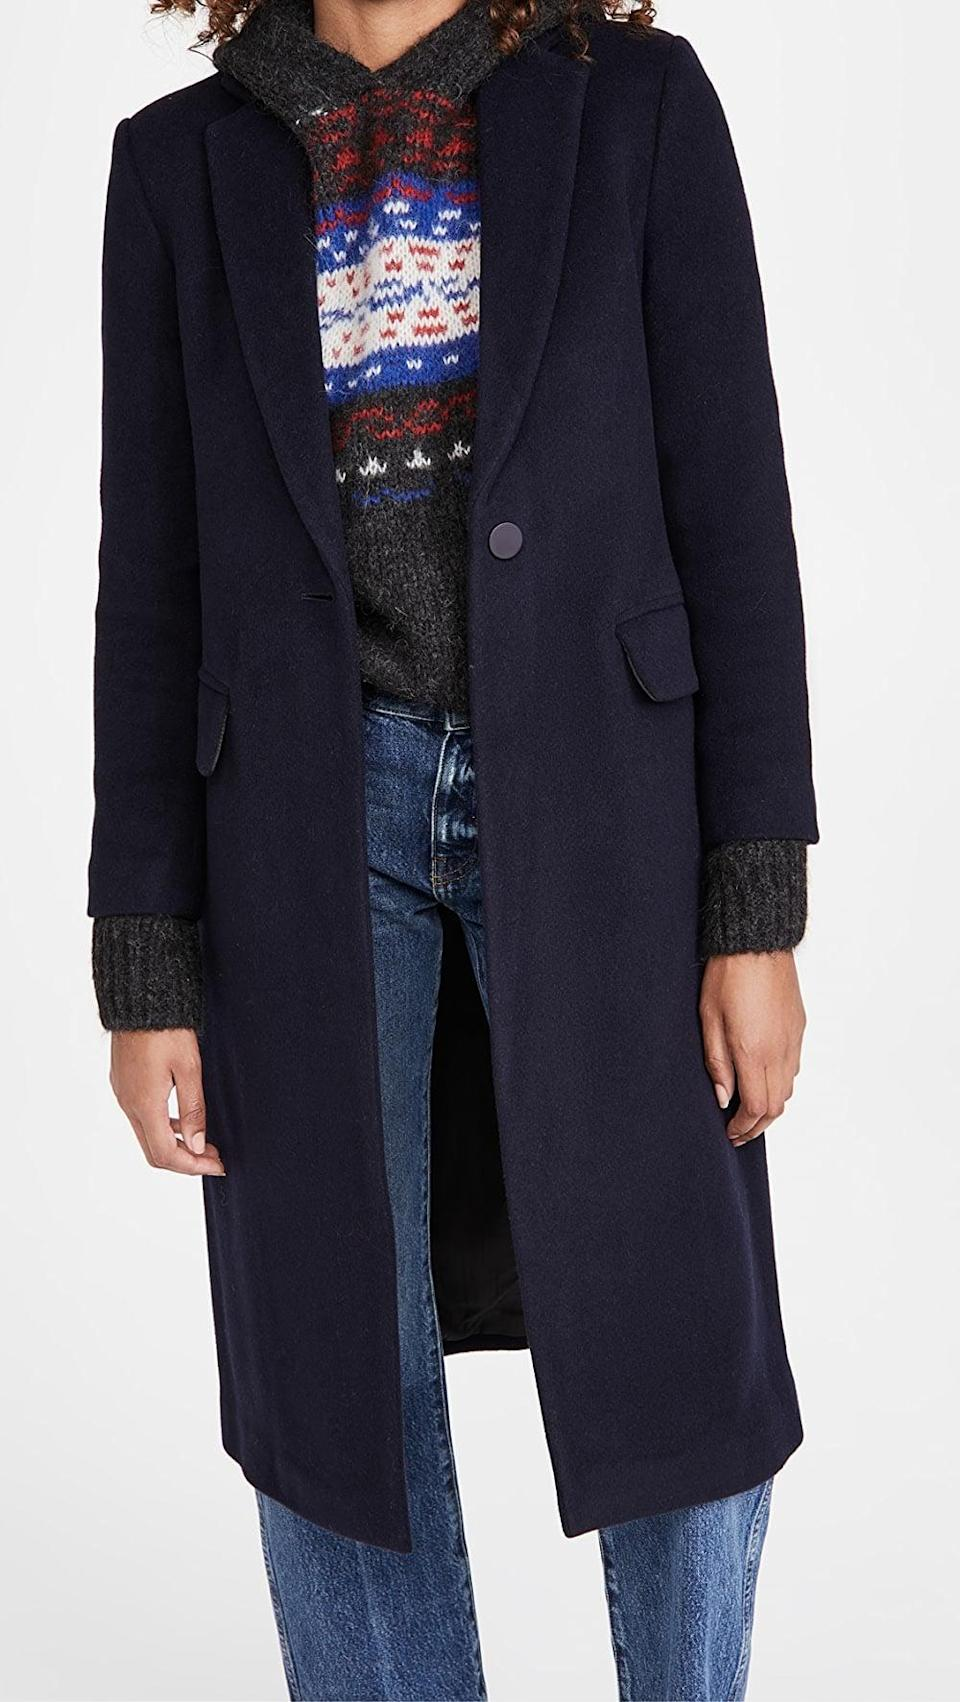 <p>The <span>Club Monaco Slim Tailored Wool Coat</span> ($479) goes with every outfit imaginable. It'll be their go-to coat.</p>